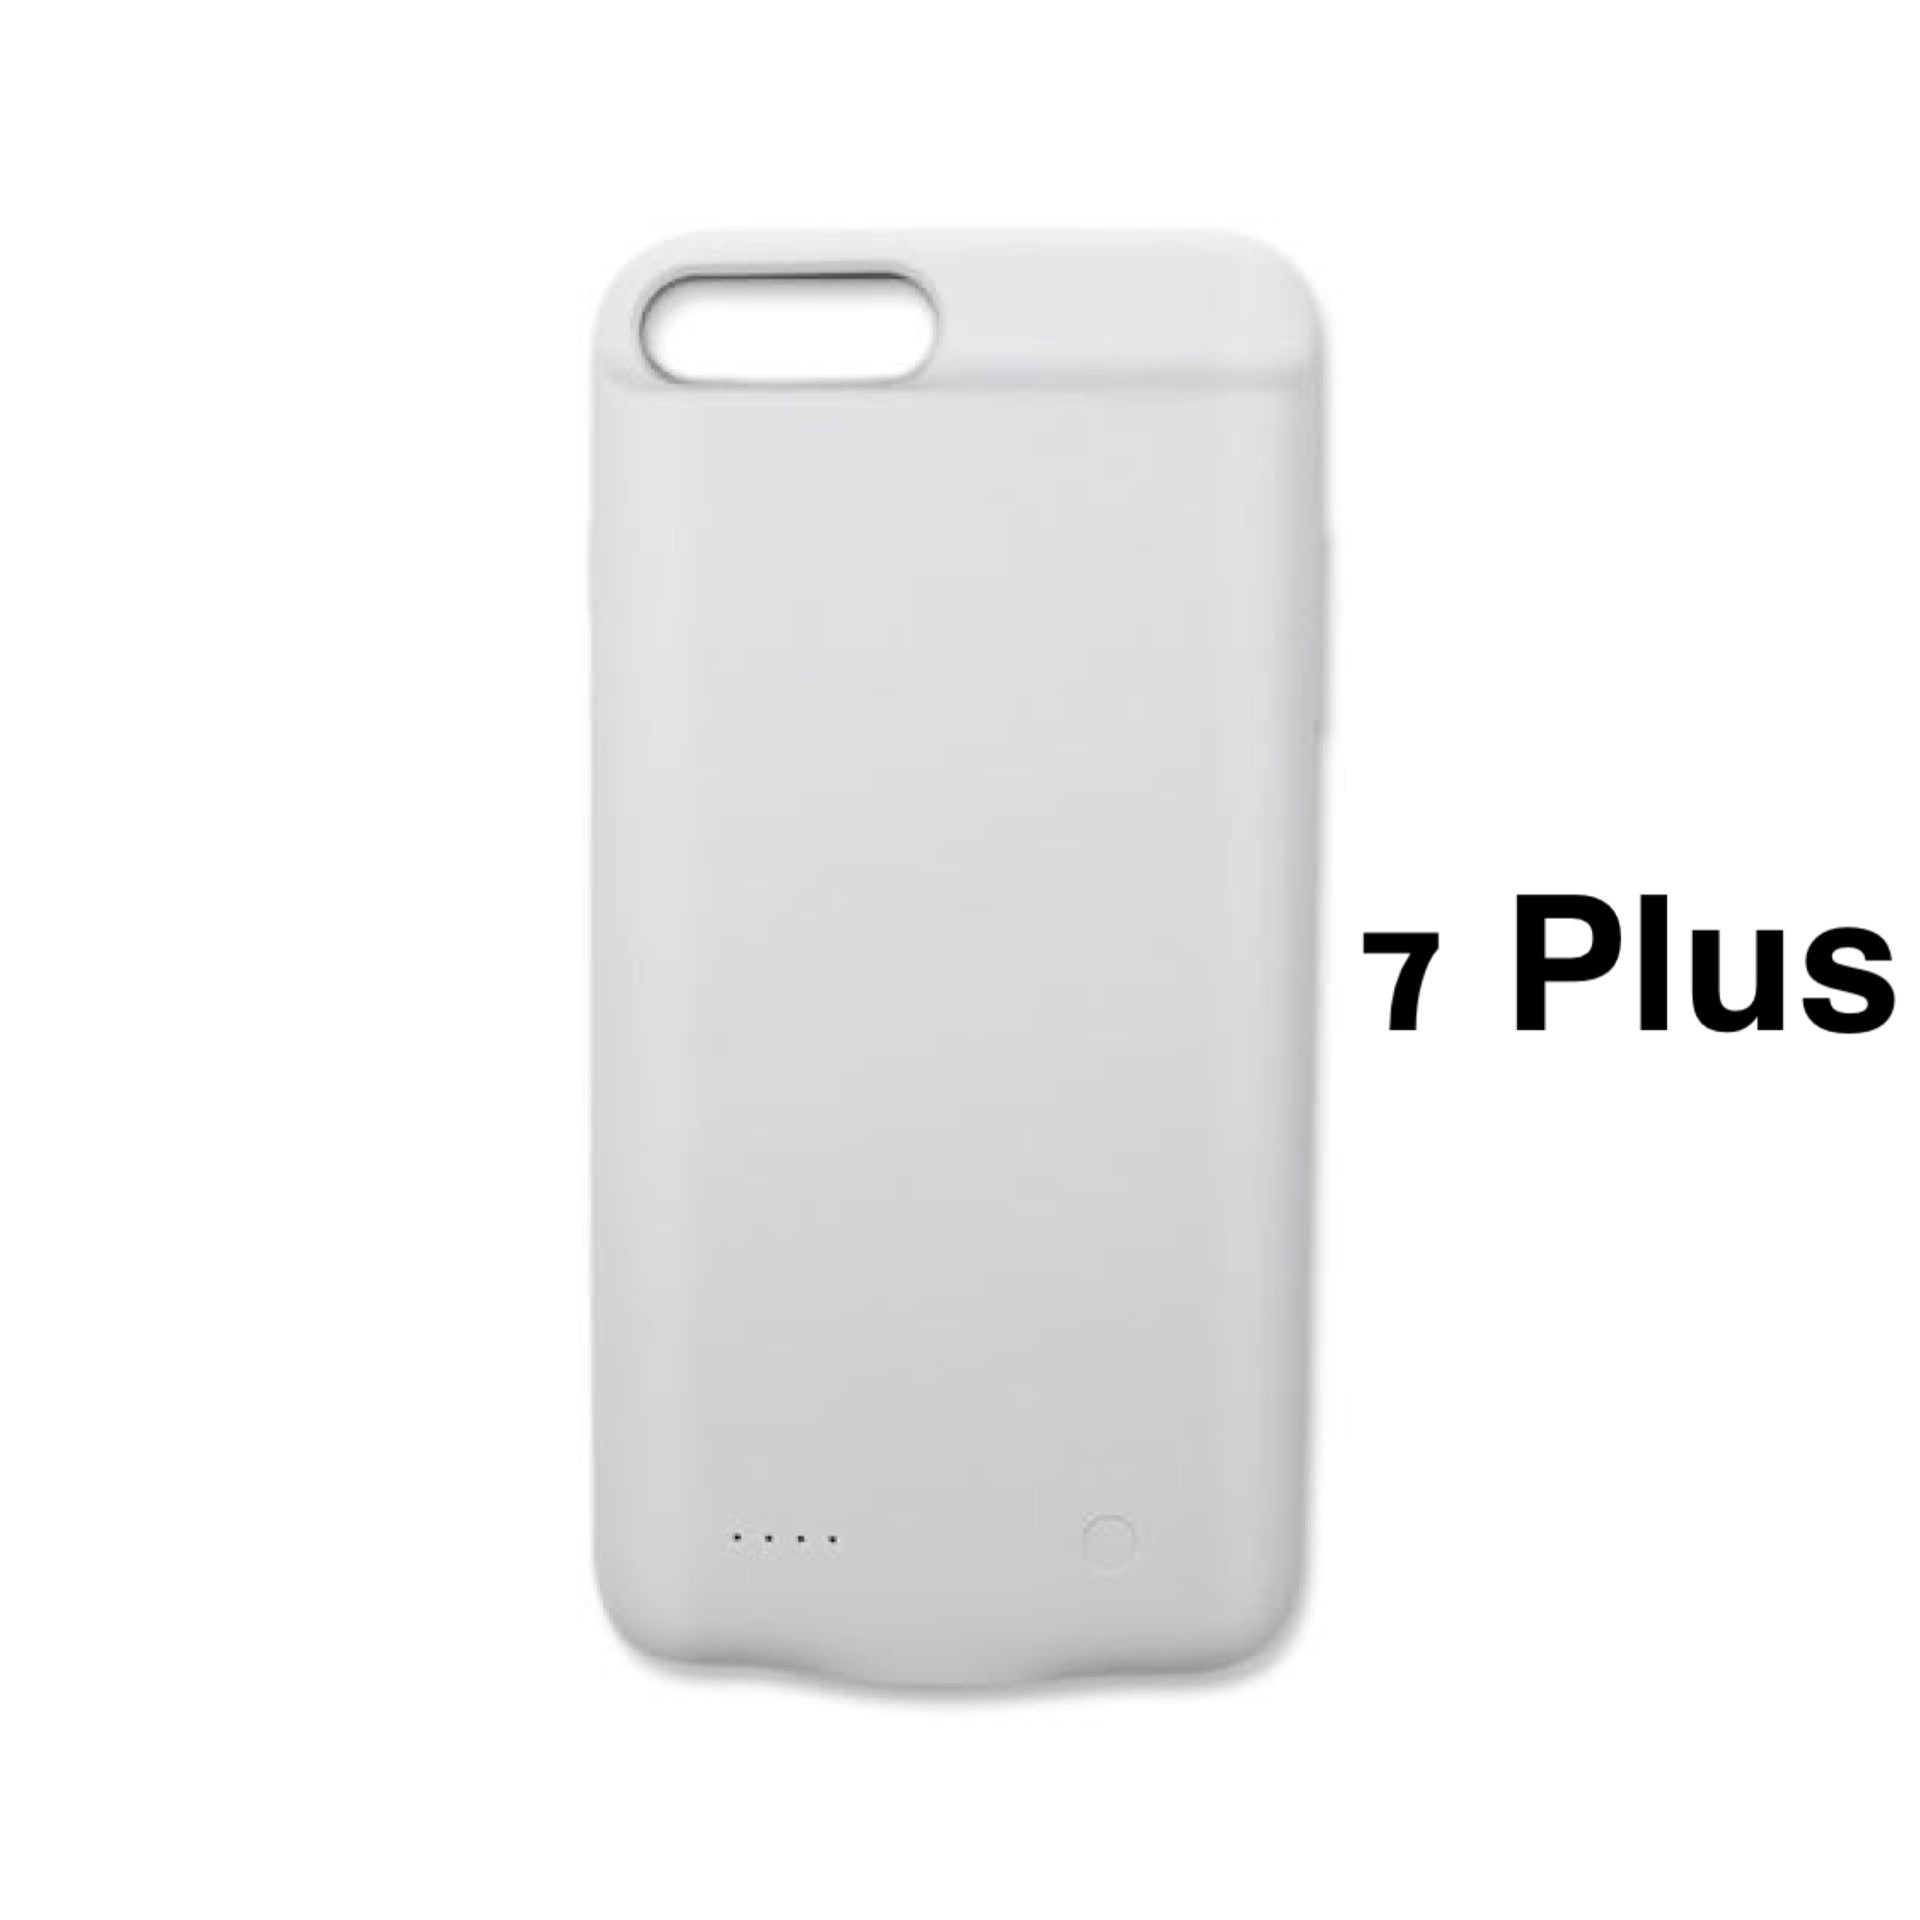 Sexiest iPhone Battery Case